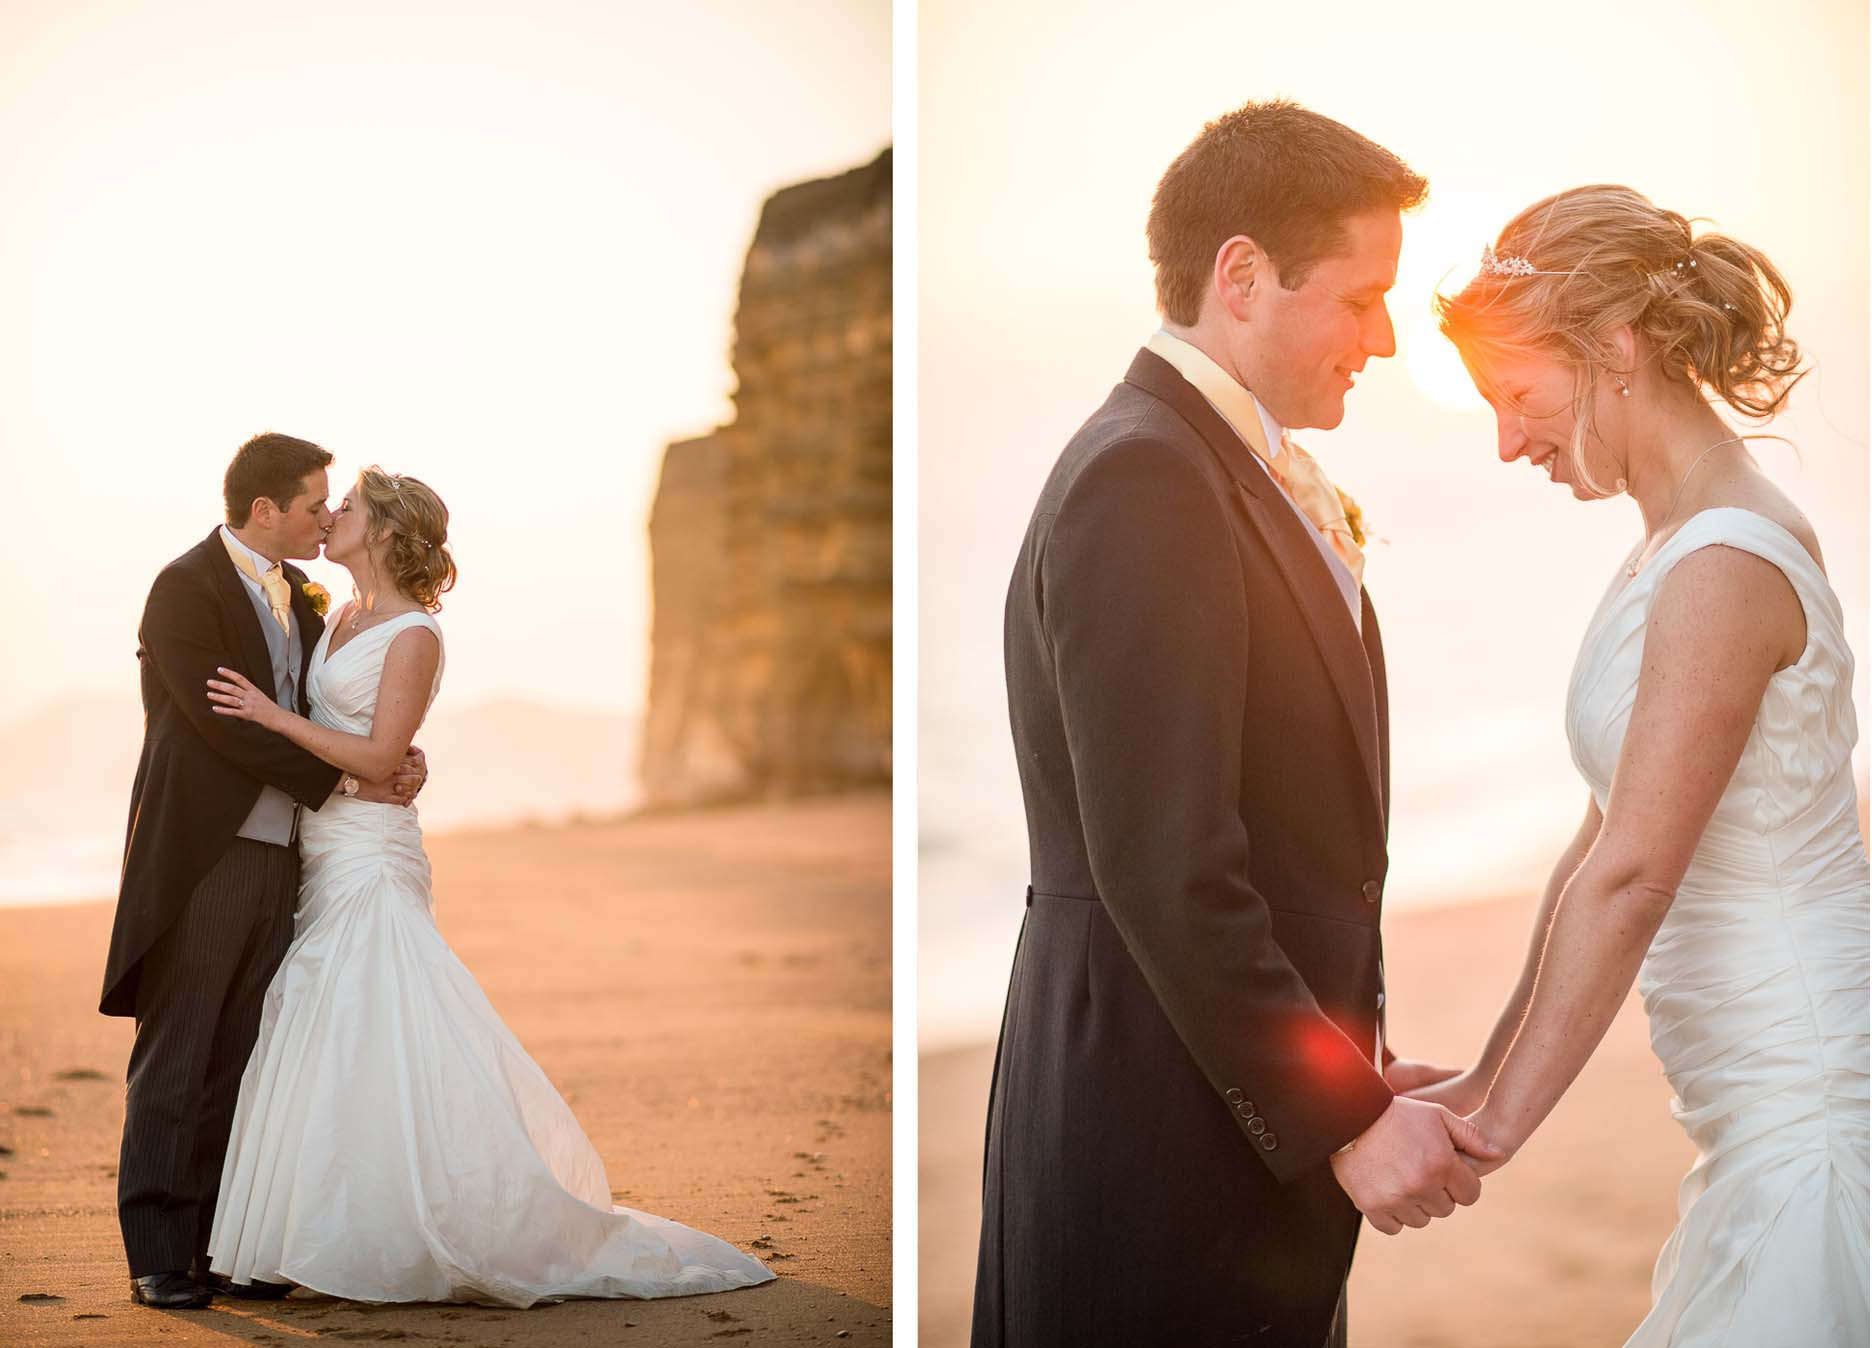 beach-wedding-shoot-dorset-west-bay-sunset-ben-jo-28